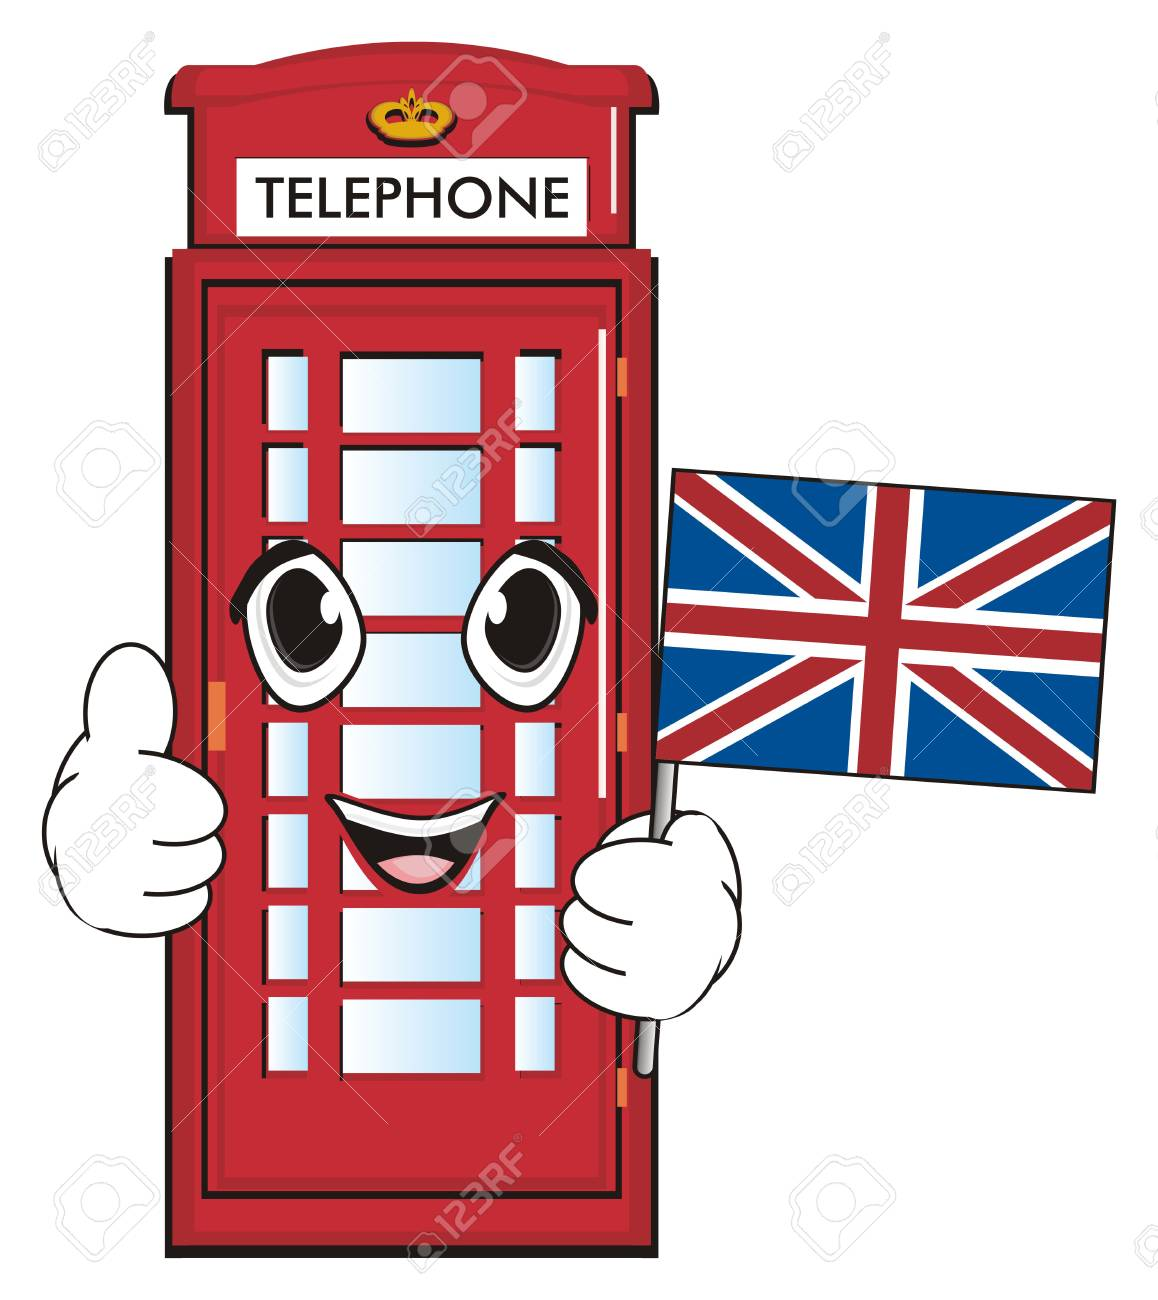 happy face of red telephone booth hold uk flag and show gesture rh 123rf com free united kingdom flag clip art